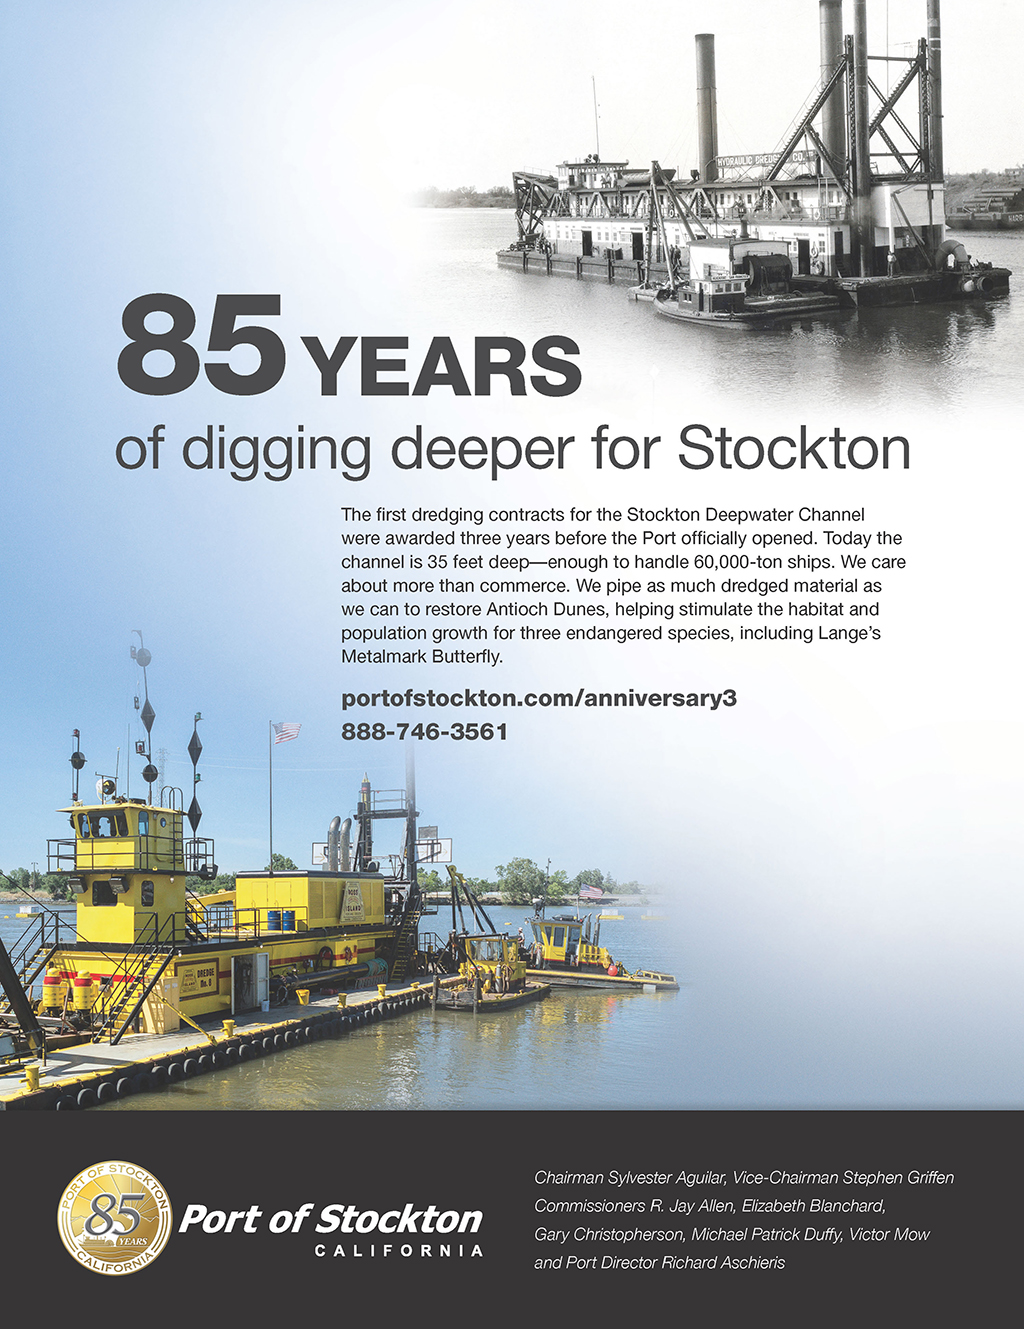 85 Years of Digging Deeper for Stockton